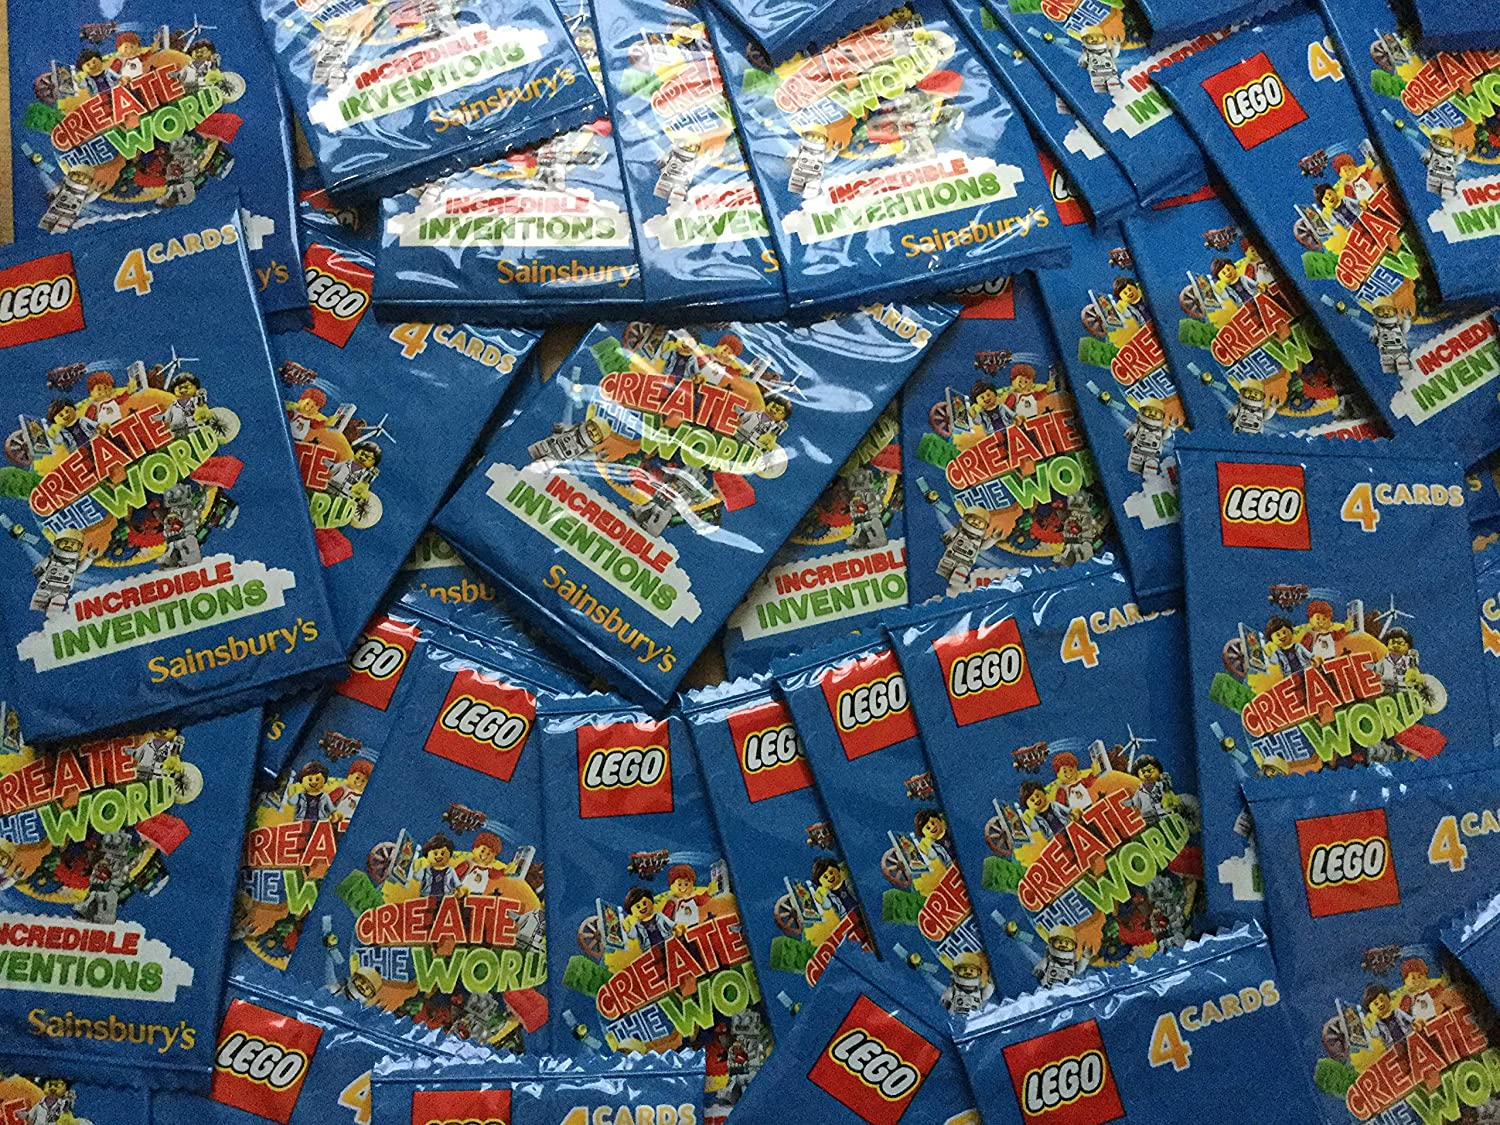 Lego Incredible Inventions Create The World Collectors Card Album With Gift Bag